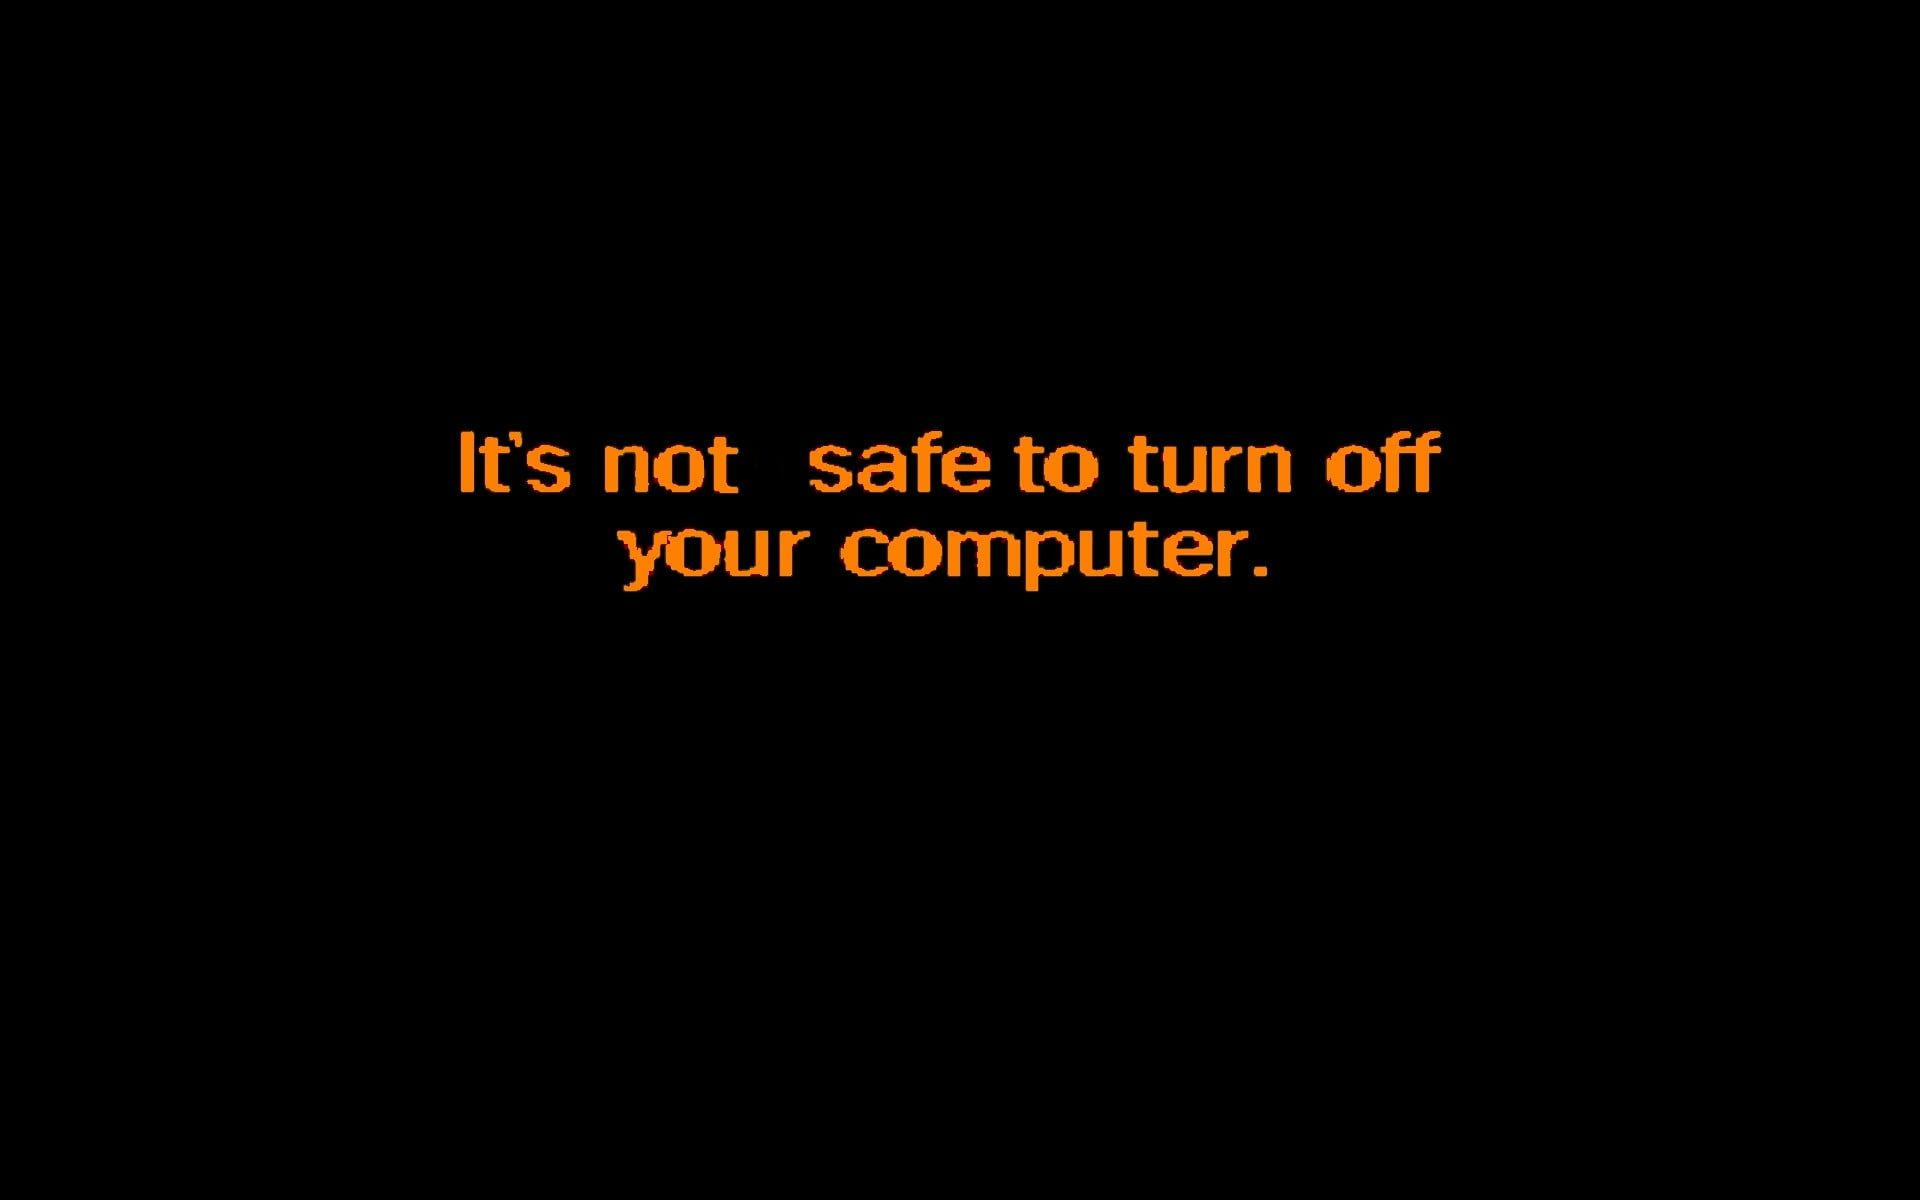 Black Background With It S Not Safe To Turn Off Your Computer Windows 98 Minimalism 1080p Wallpaper Hdwallpaper Desktop Turn Off Turn Ons Computer